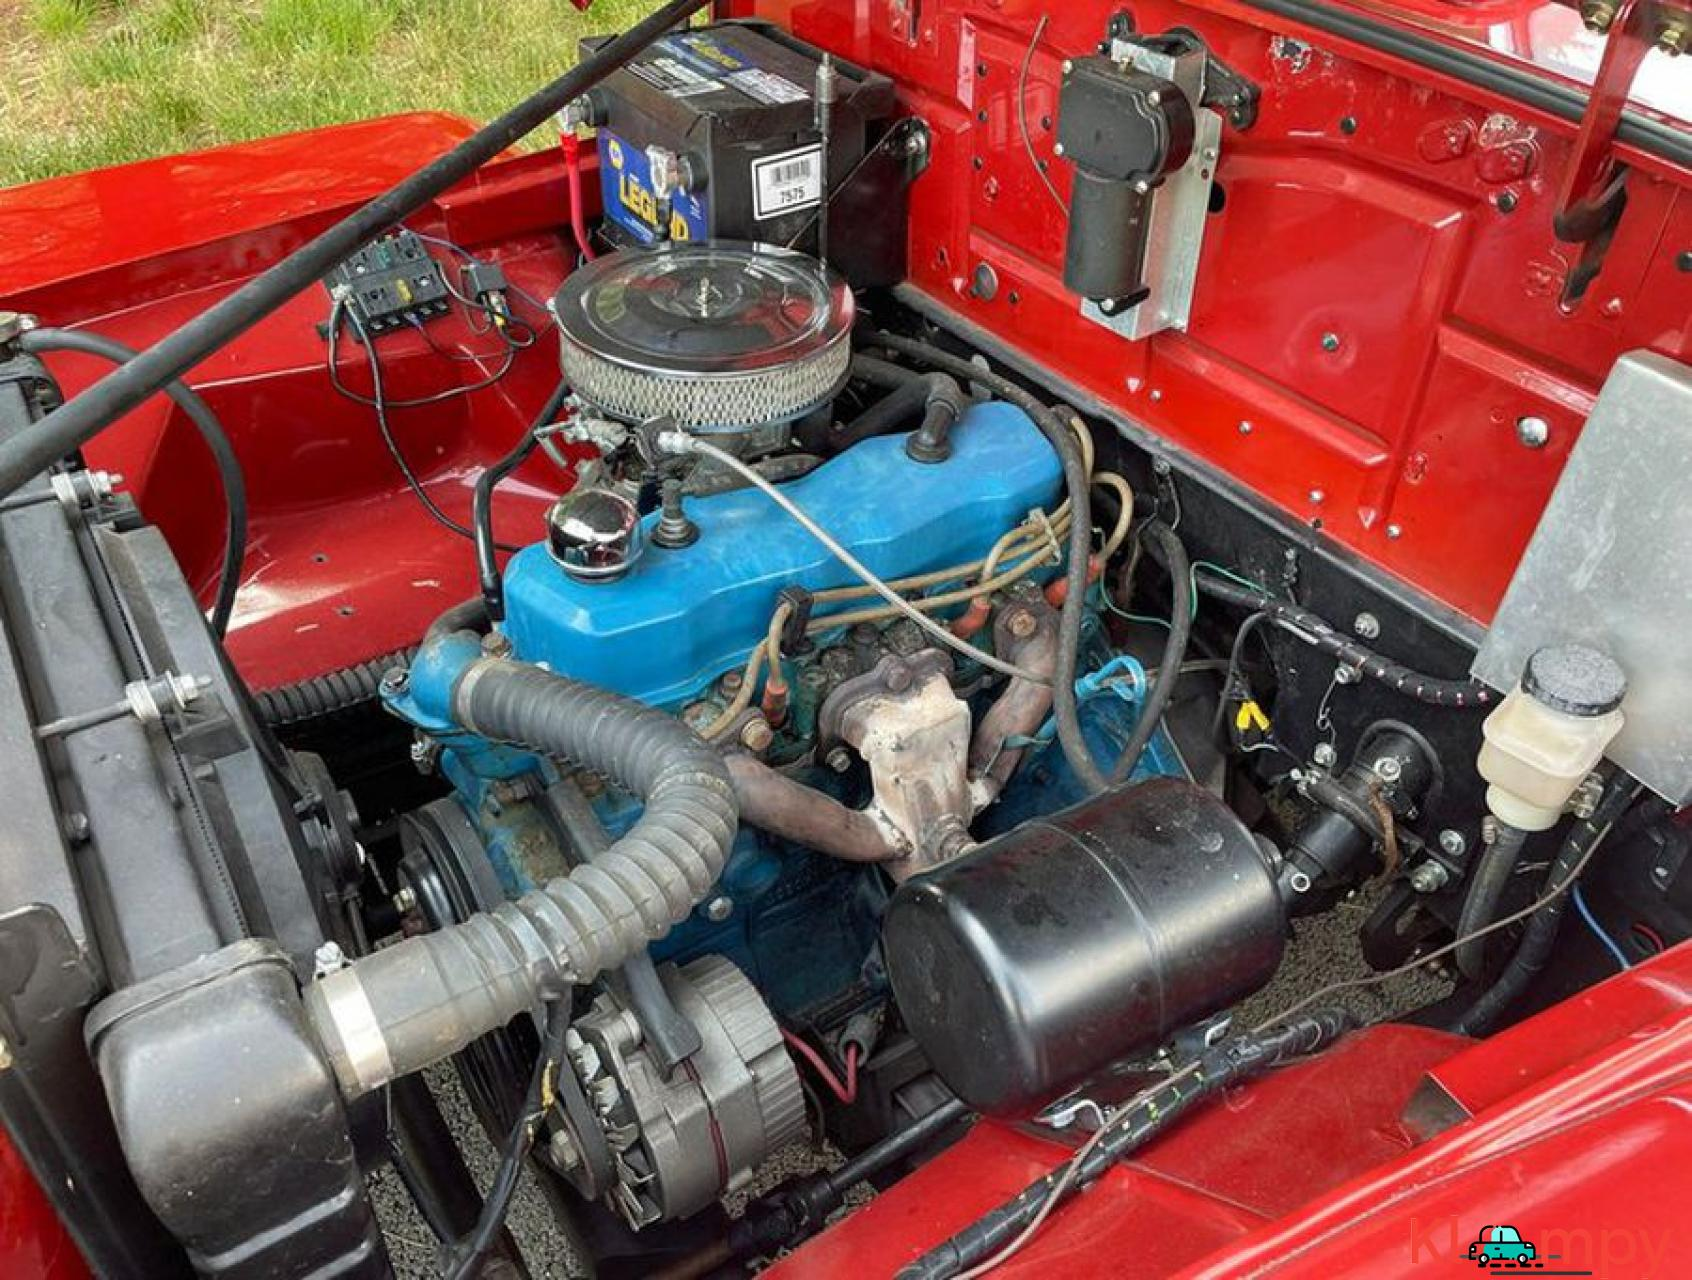 1948 Willys Jeepster Convertible GM 2.5 liter 4 cyl - 8/16